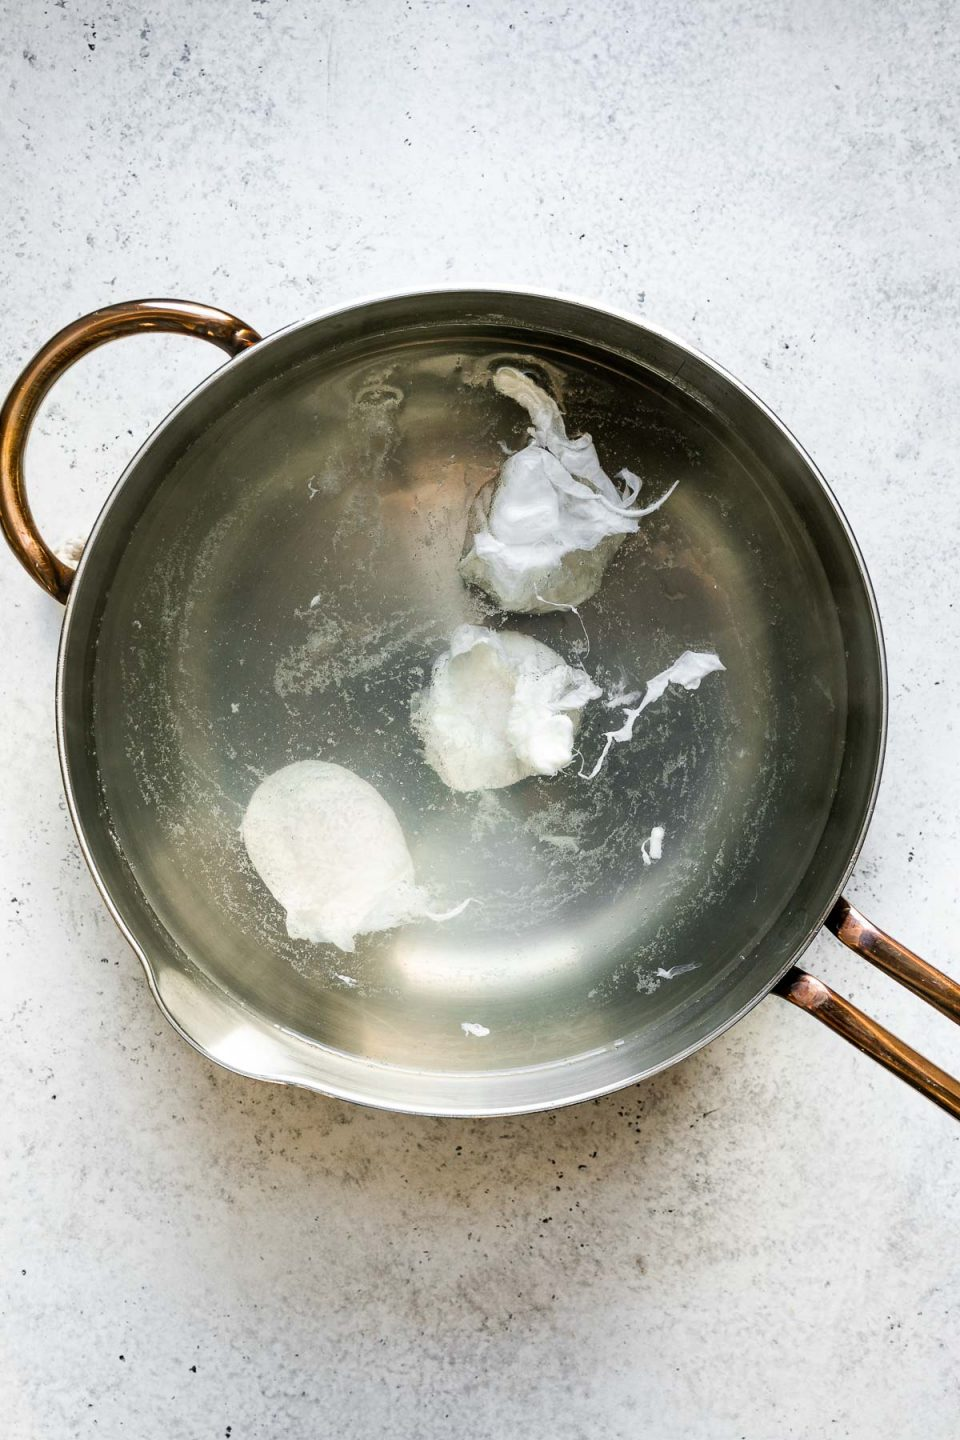 3 eggs poaching in simmering water in a saucepan, atop a white surface.